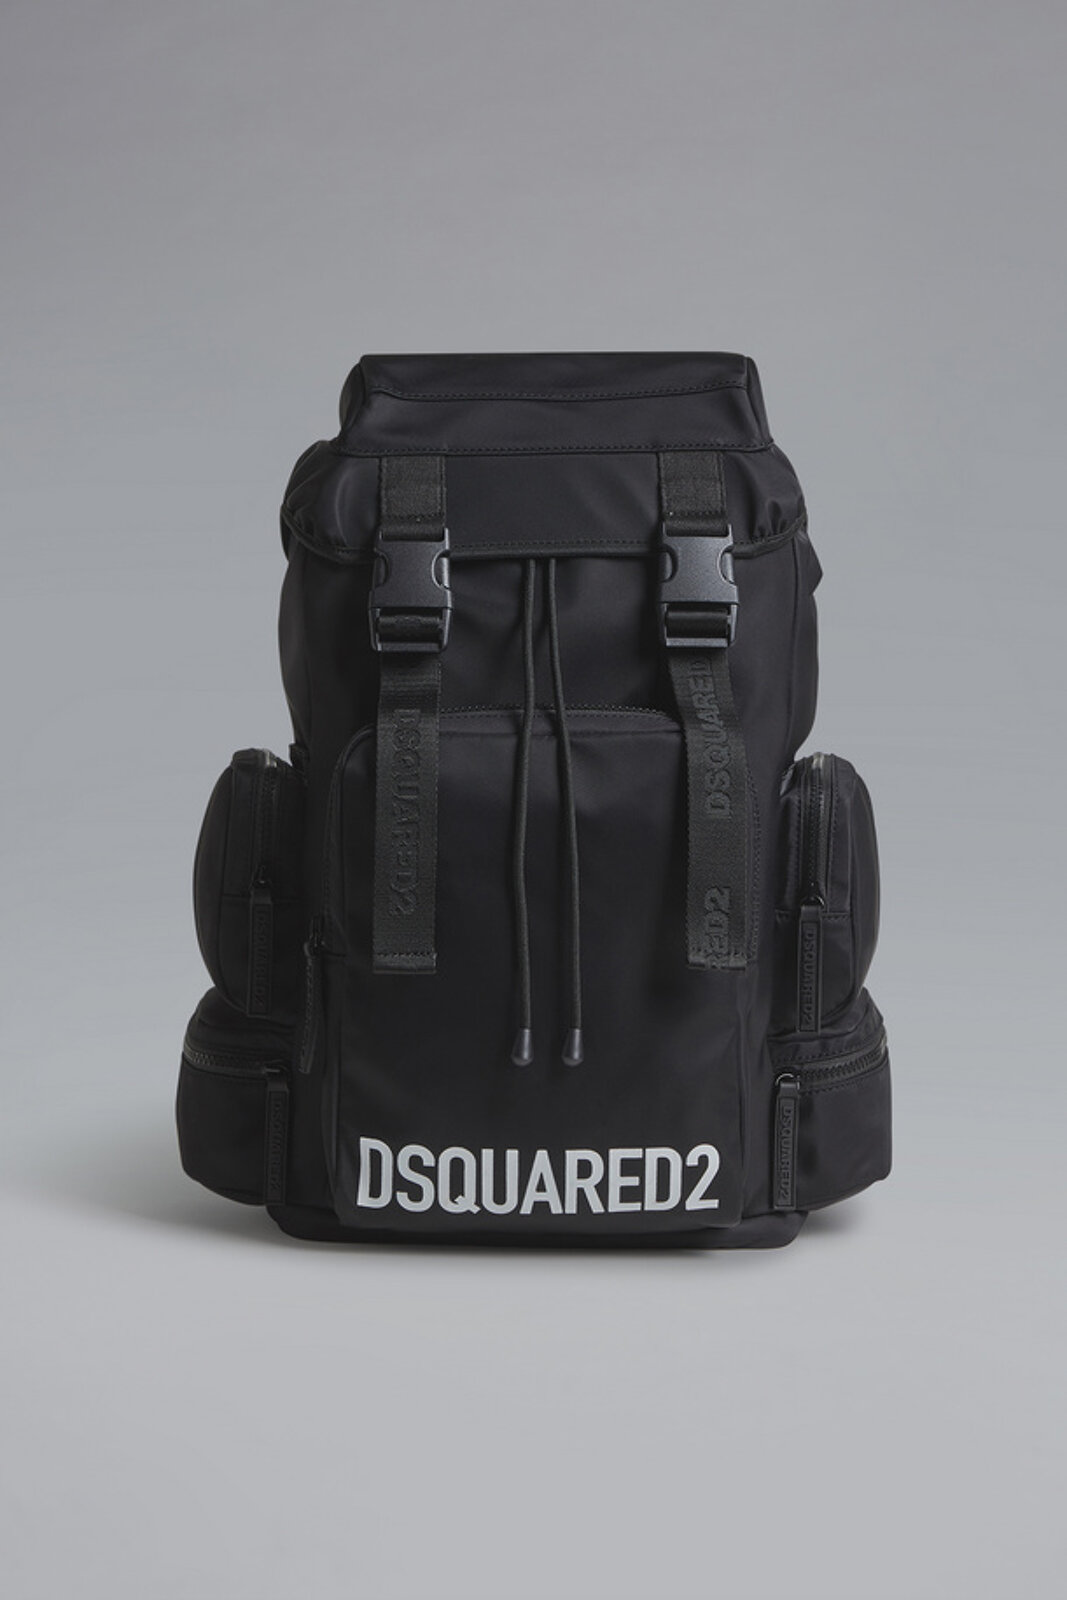 Dsquared2 Nylon Active Backpack - Dsquared2